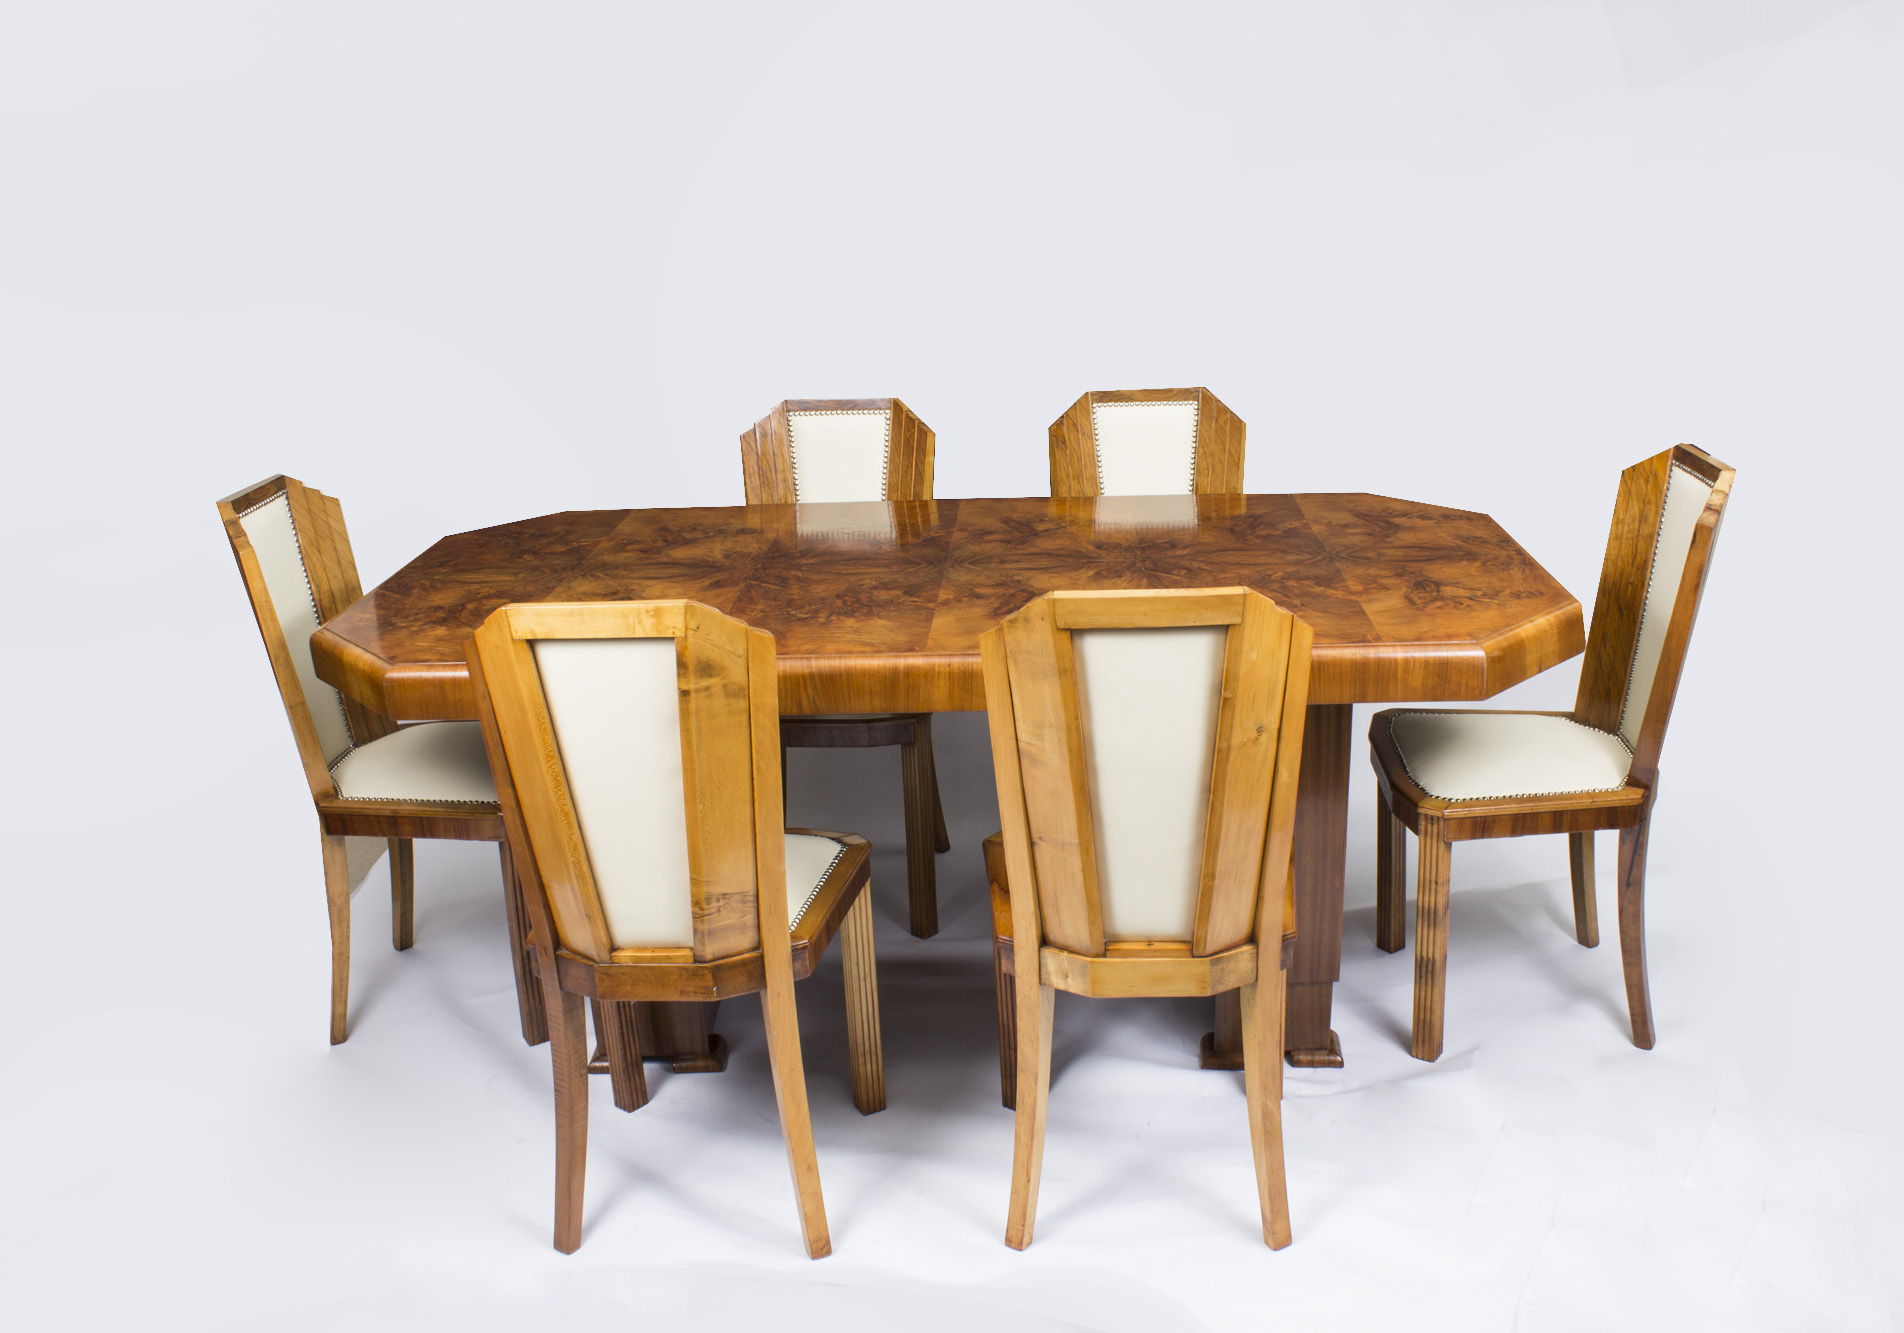 Antique art deco burr walnut dining table 6 chairs c1930 for Table de nuit art deco